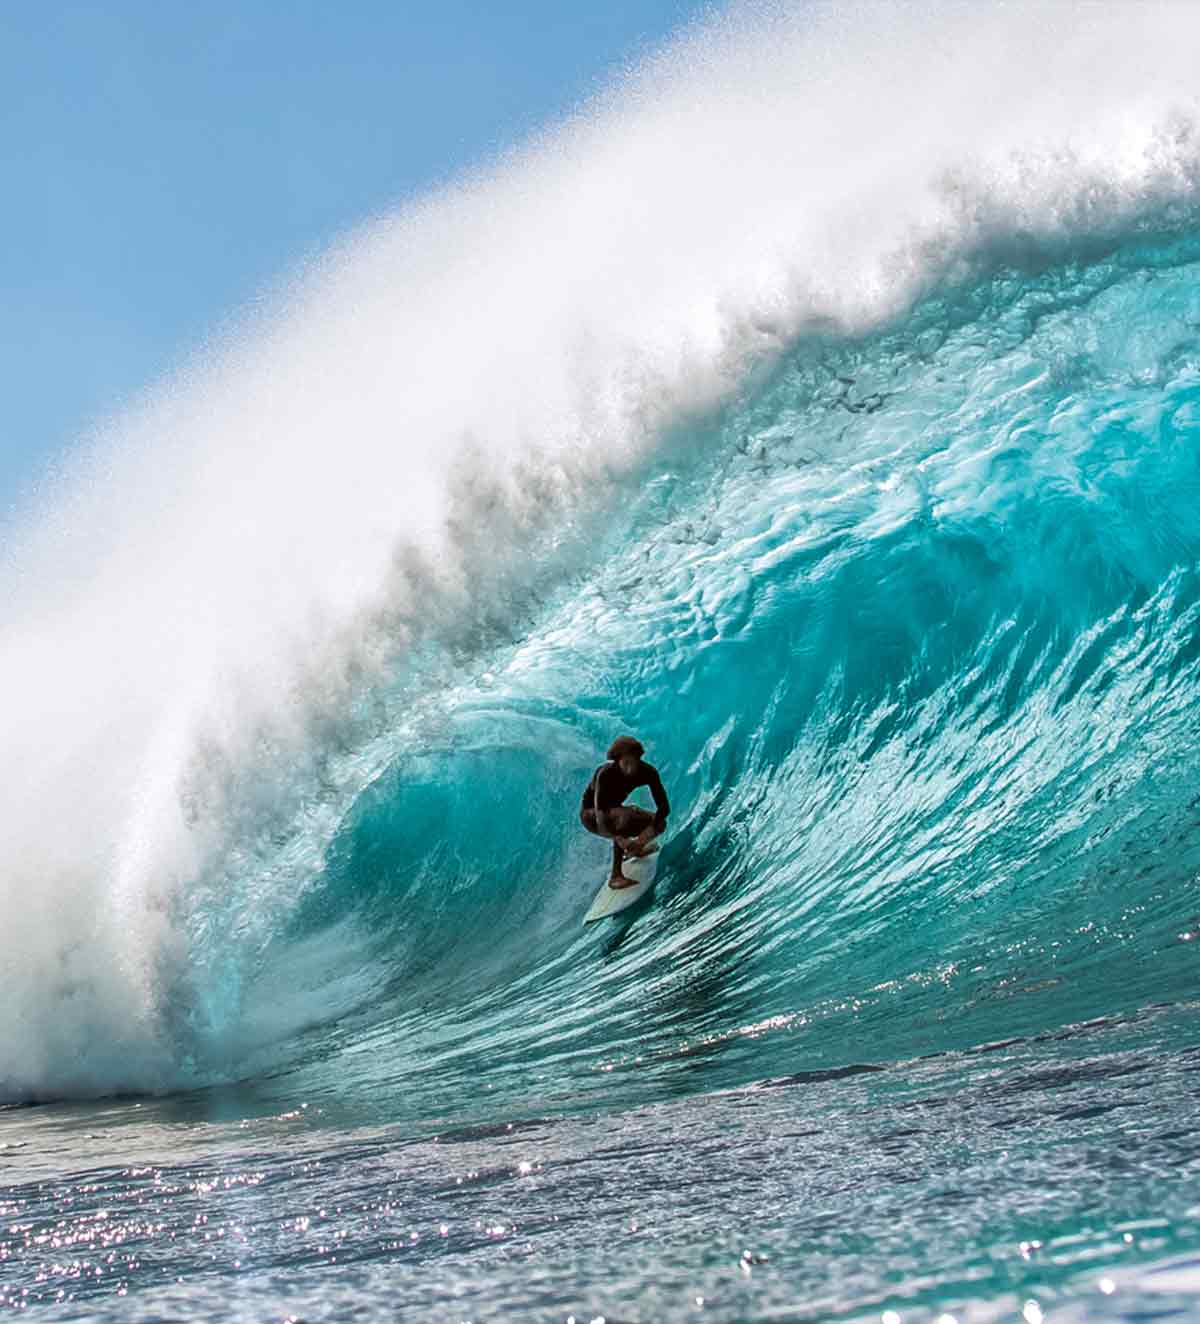 A surfer in the barrel of a large, sunlit wave.